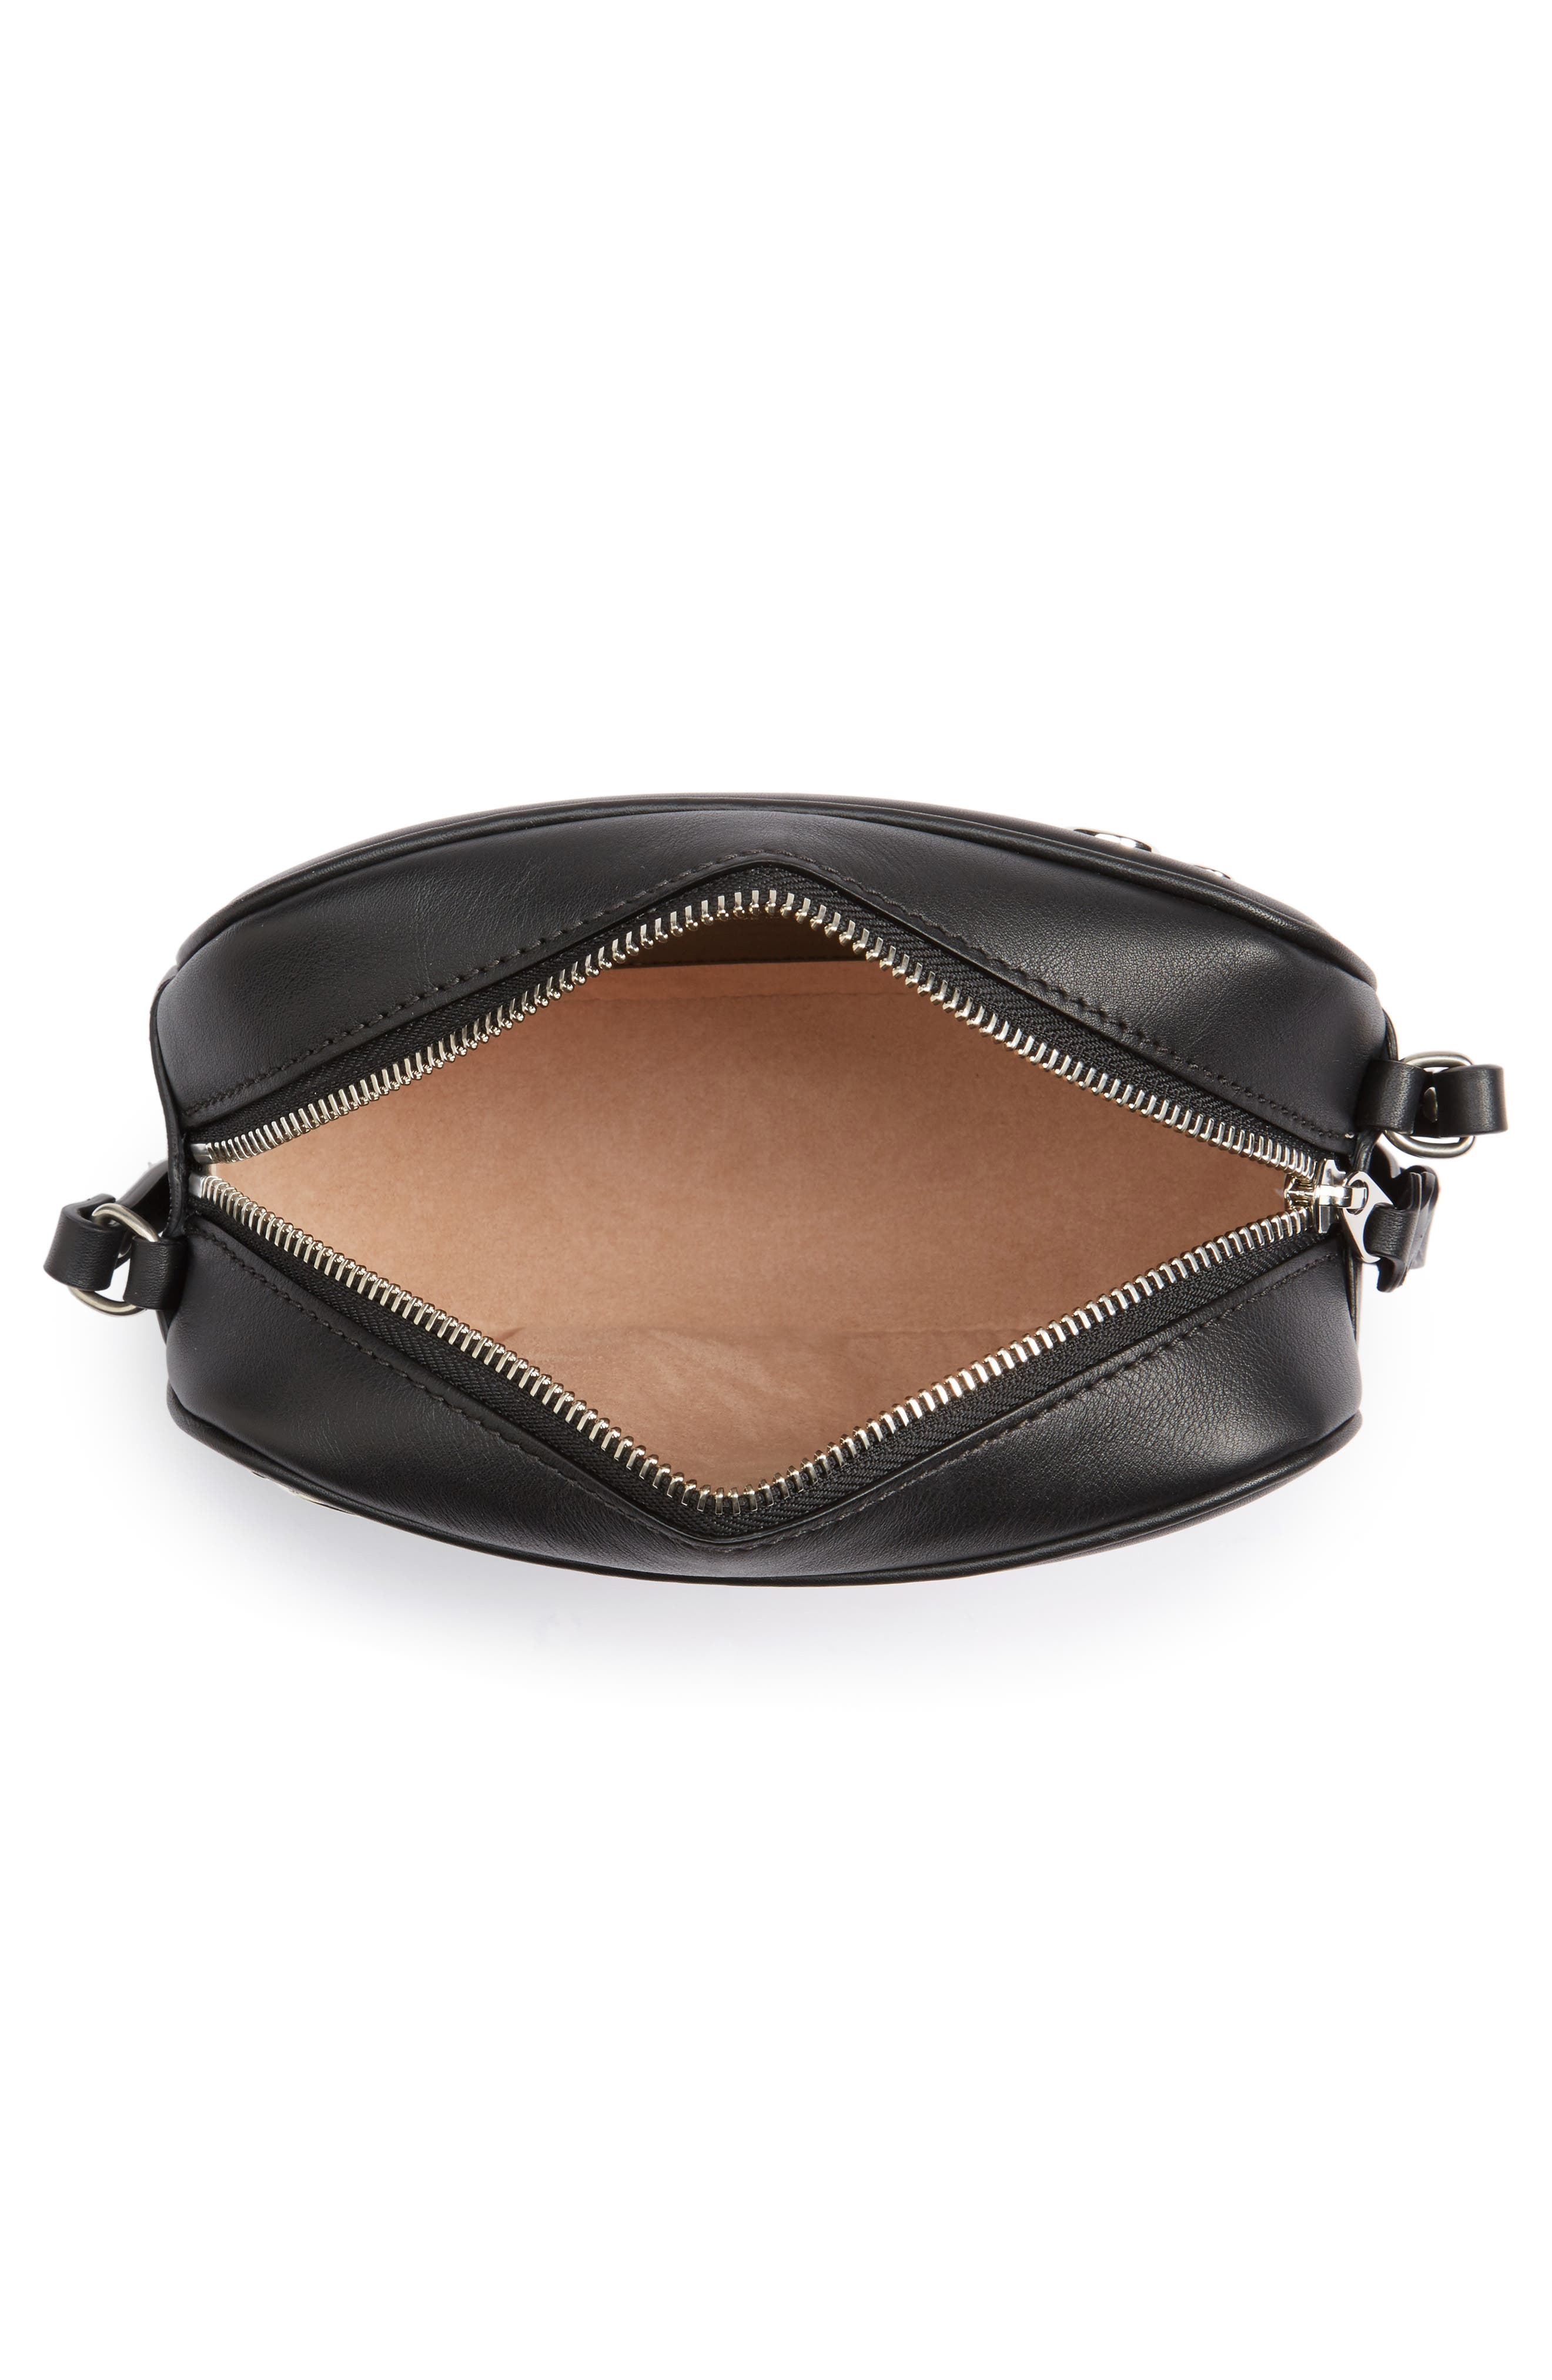 Small Leather Camera Bag,                             Alternate thumbnail 4, color,                             001